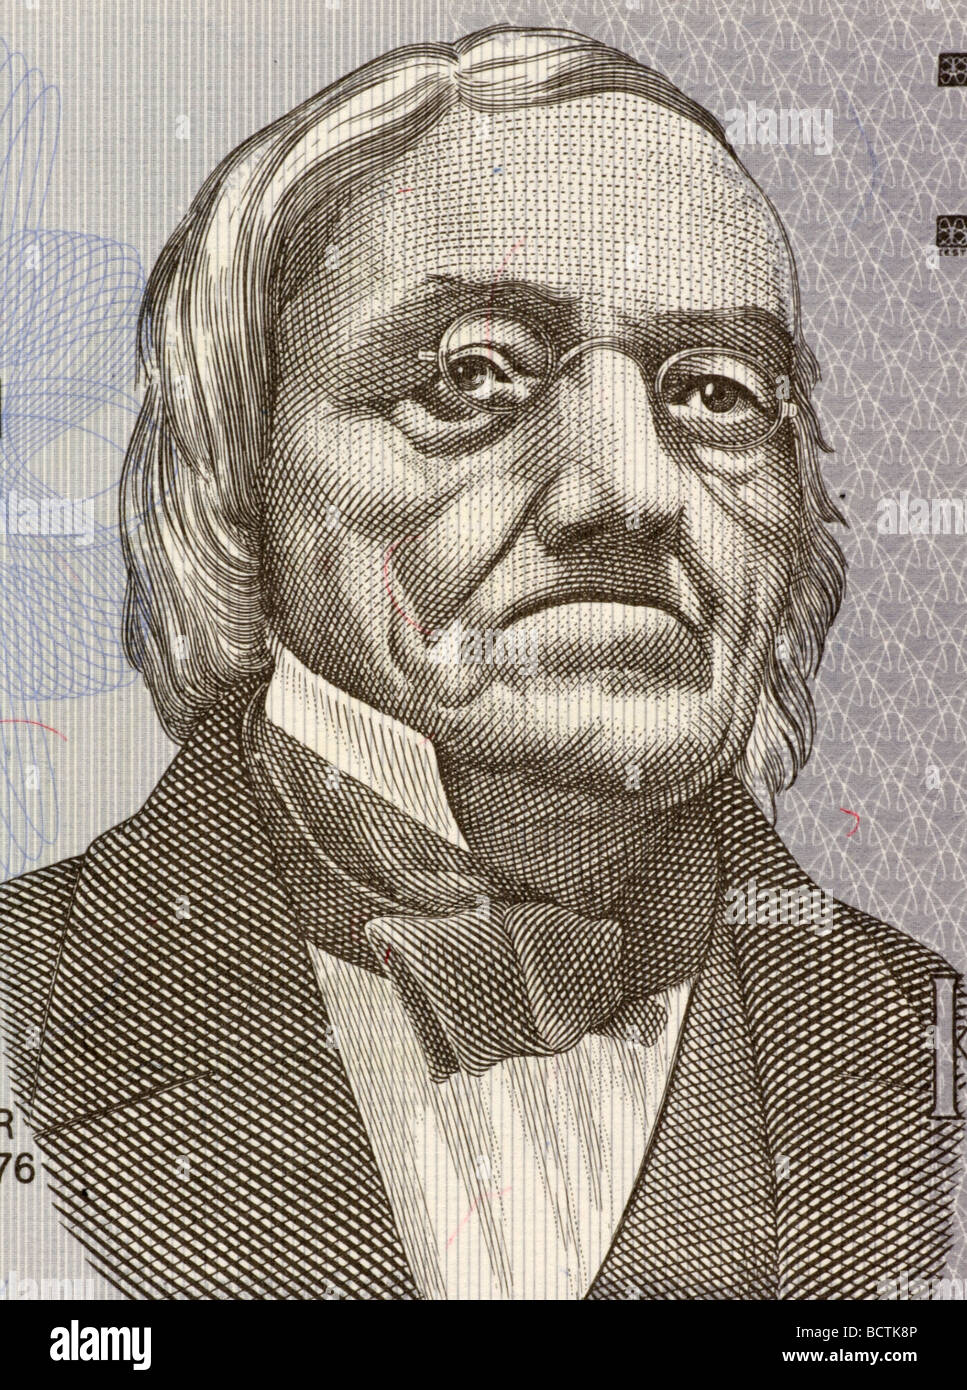 Karl Ernst von Baer on 2 Krooni 1992 Banknote from Estonia - Stock Image